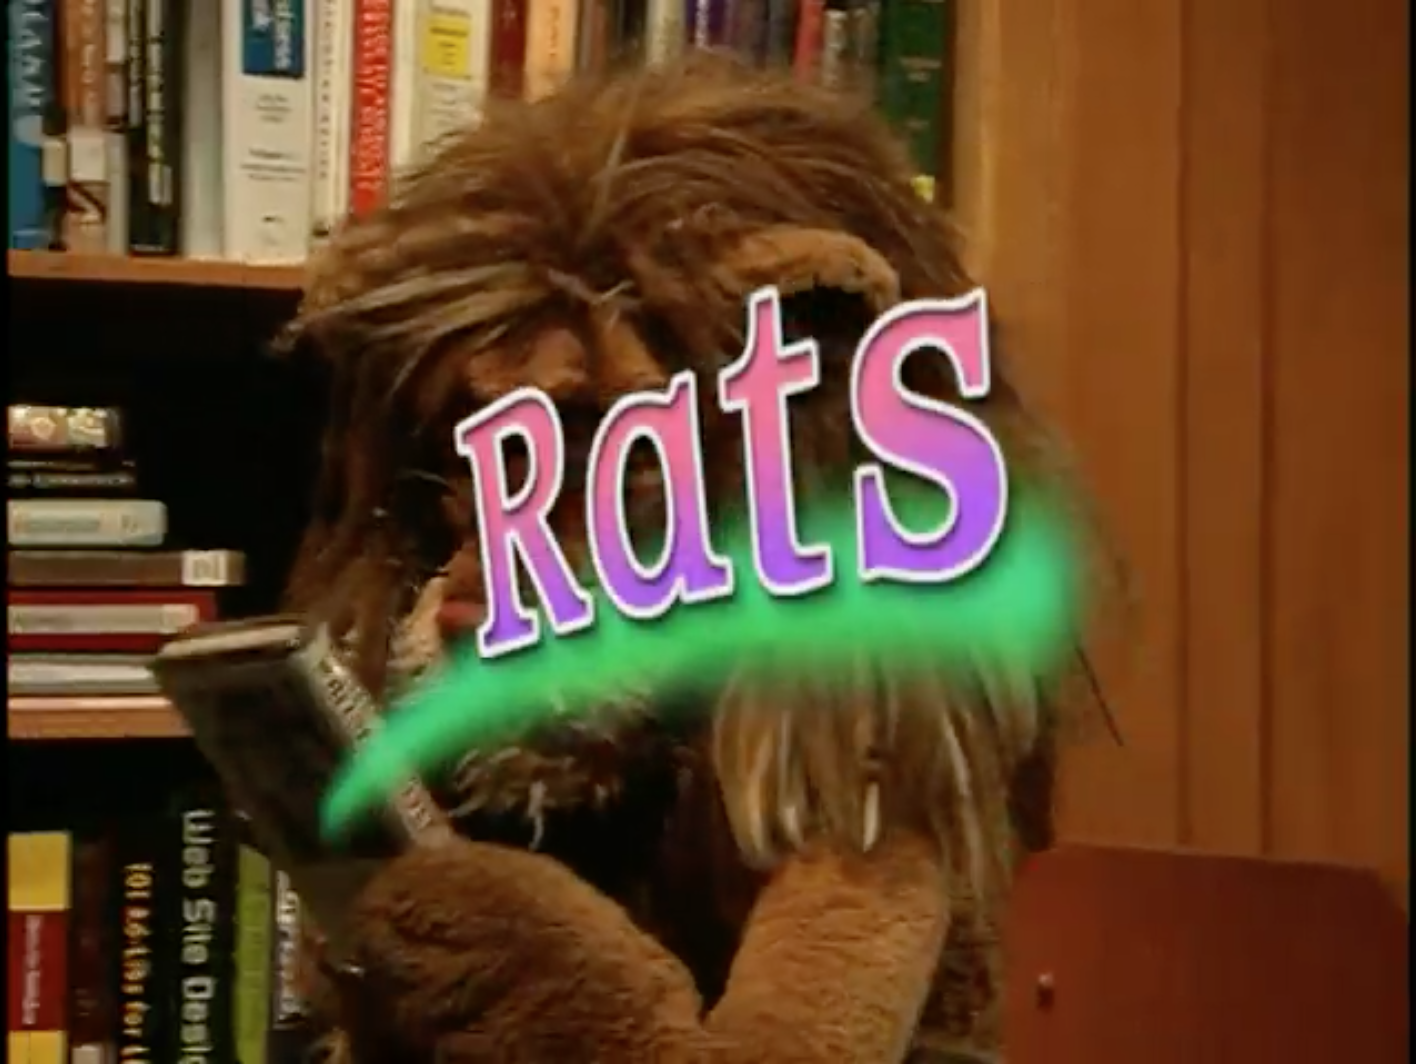 File:Rats Title.png